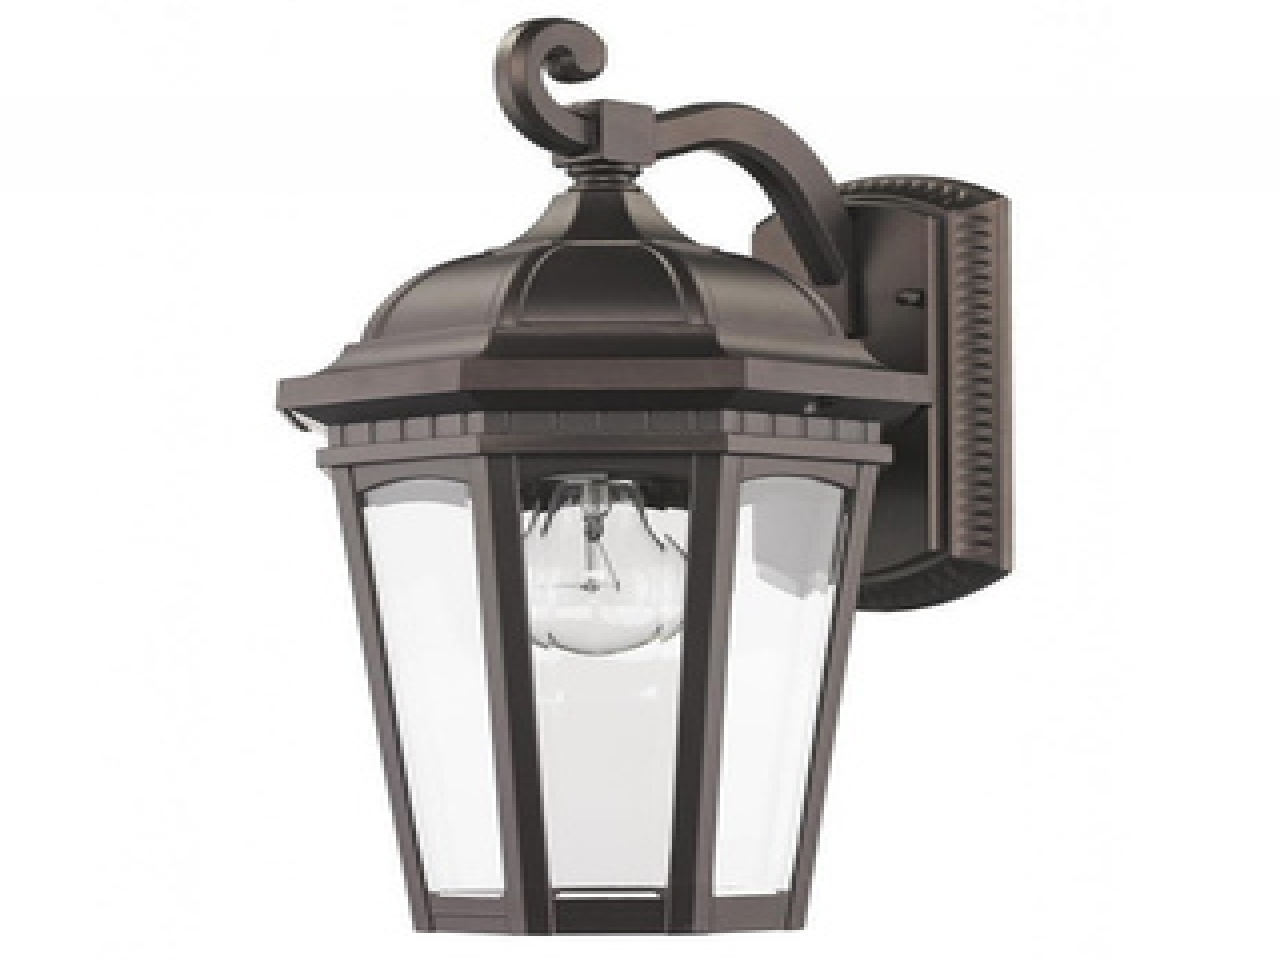 Well Known Outdoor Wall Mount Lighting Fixtures Pertaining To Light : Lantern Outdoor Wall Mount Lights Simple White Decoration (View 20 of 20)